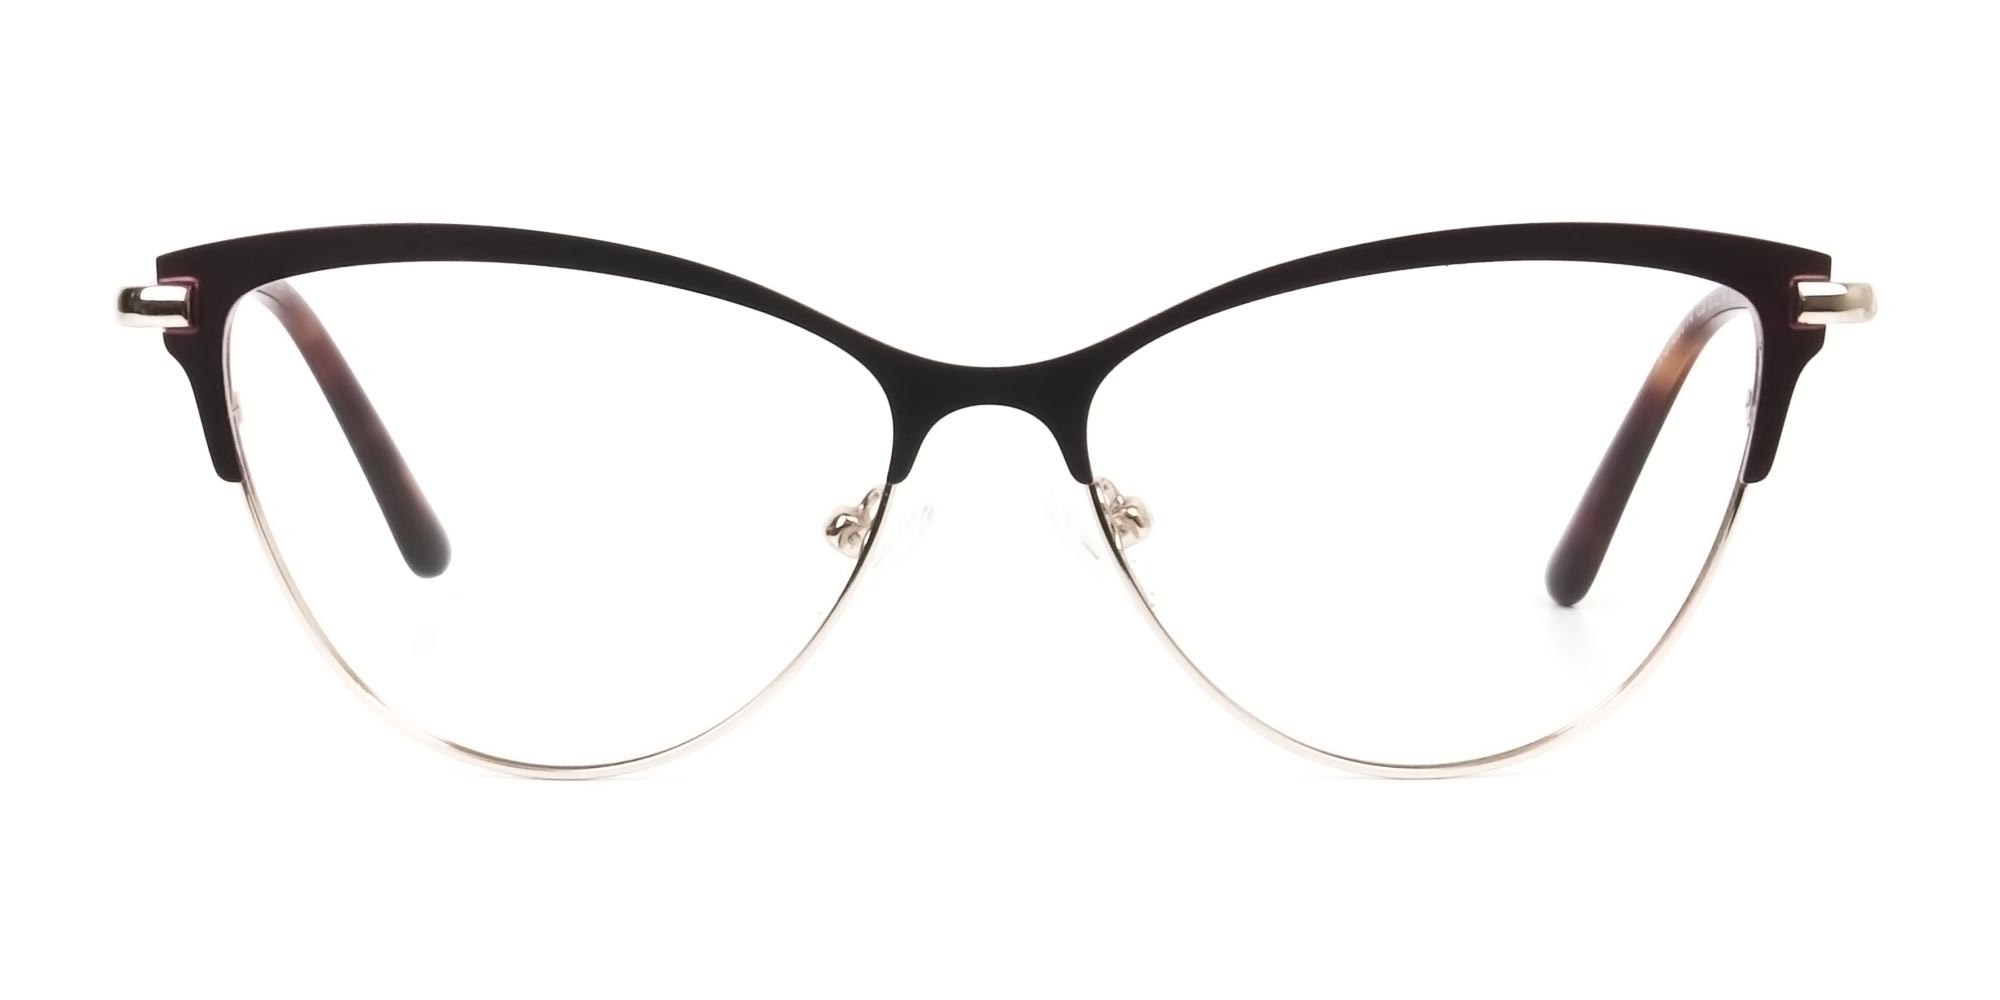 Burgundy Red and Gold Metal Cat Eye Glasses - 1